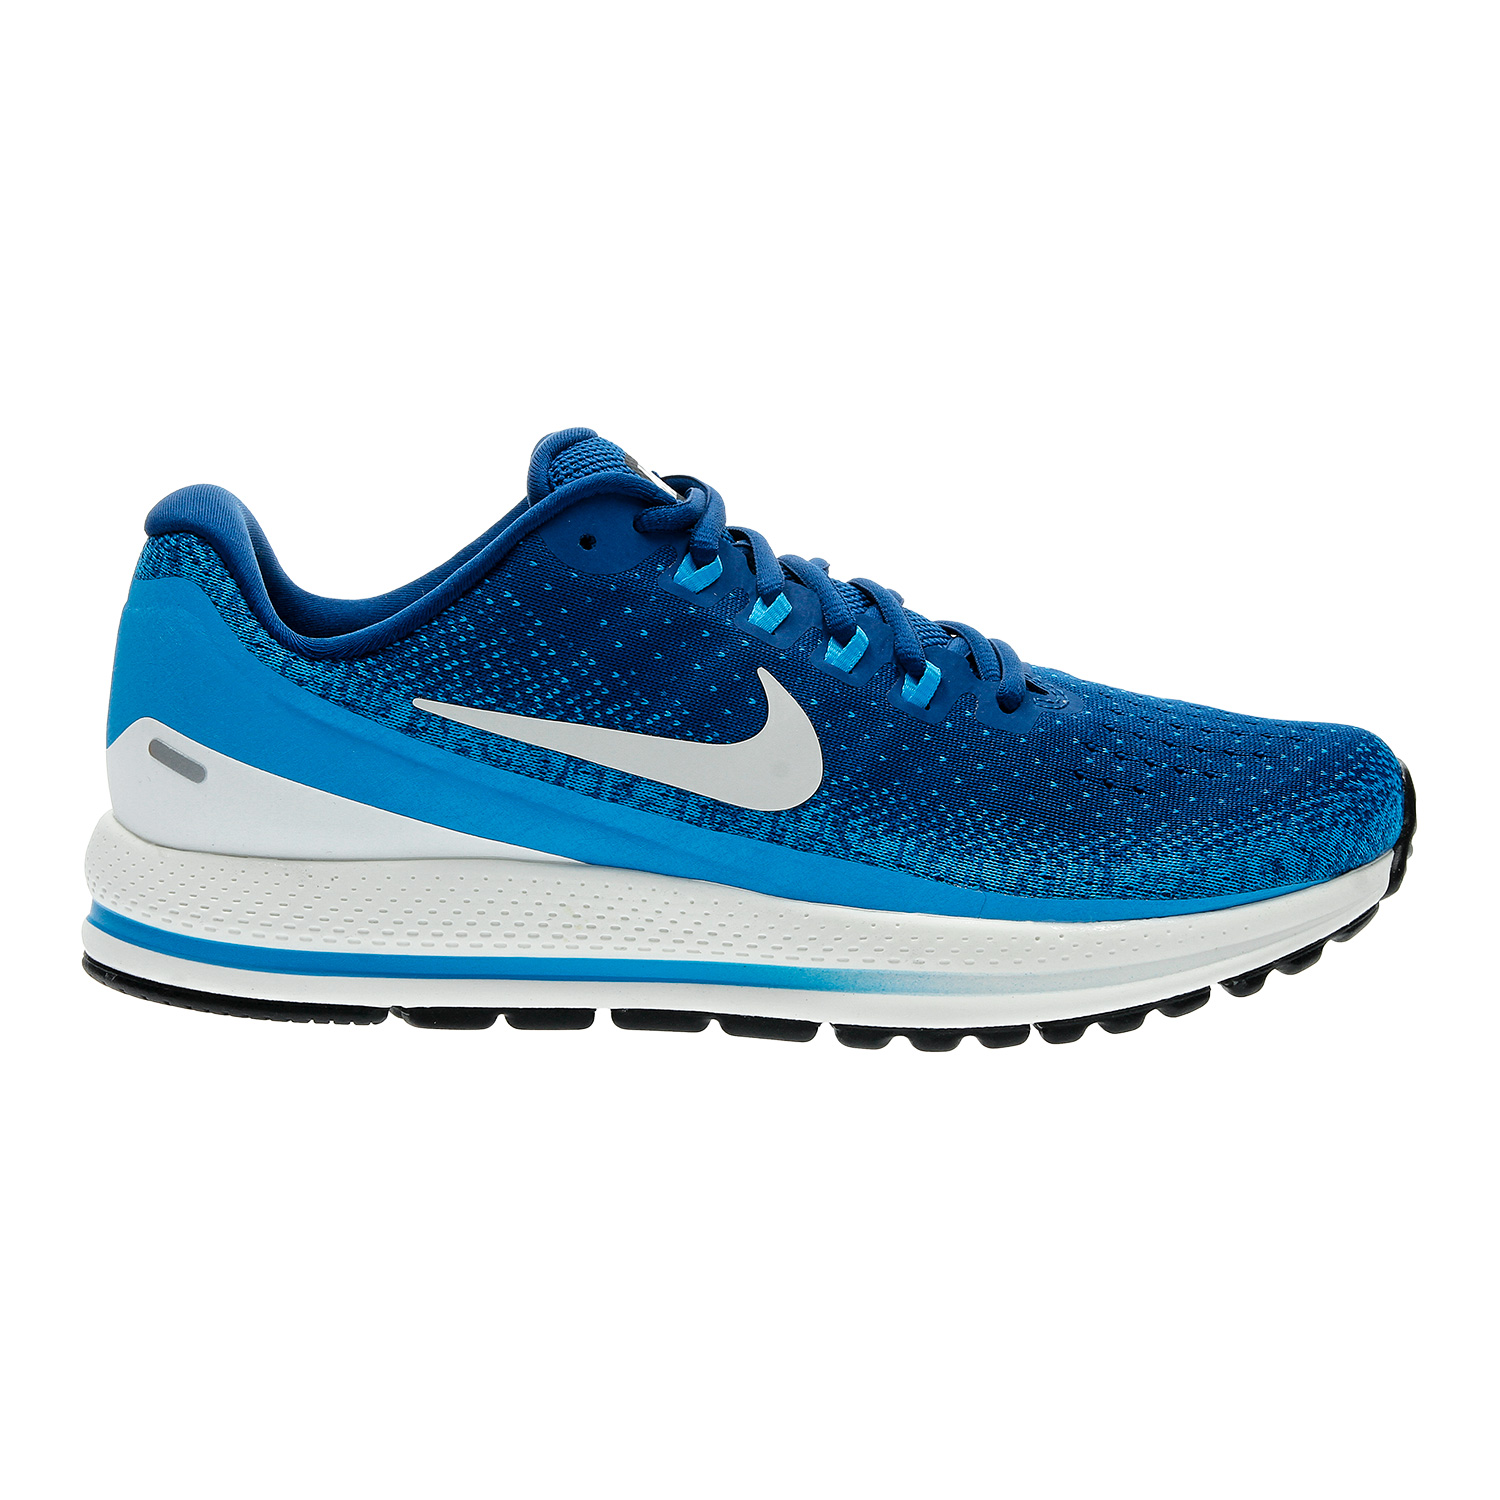 f88f3a4ab20 Mens Nike Vomero 13 - John Buckley Sports